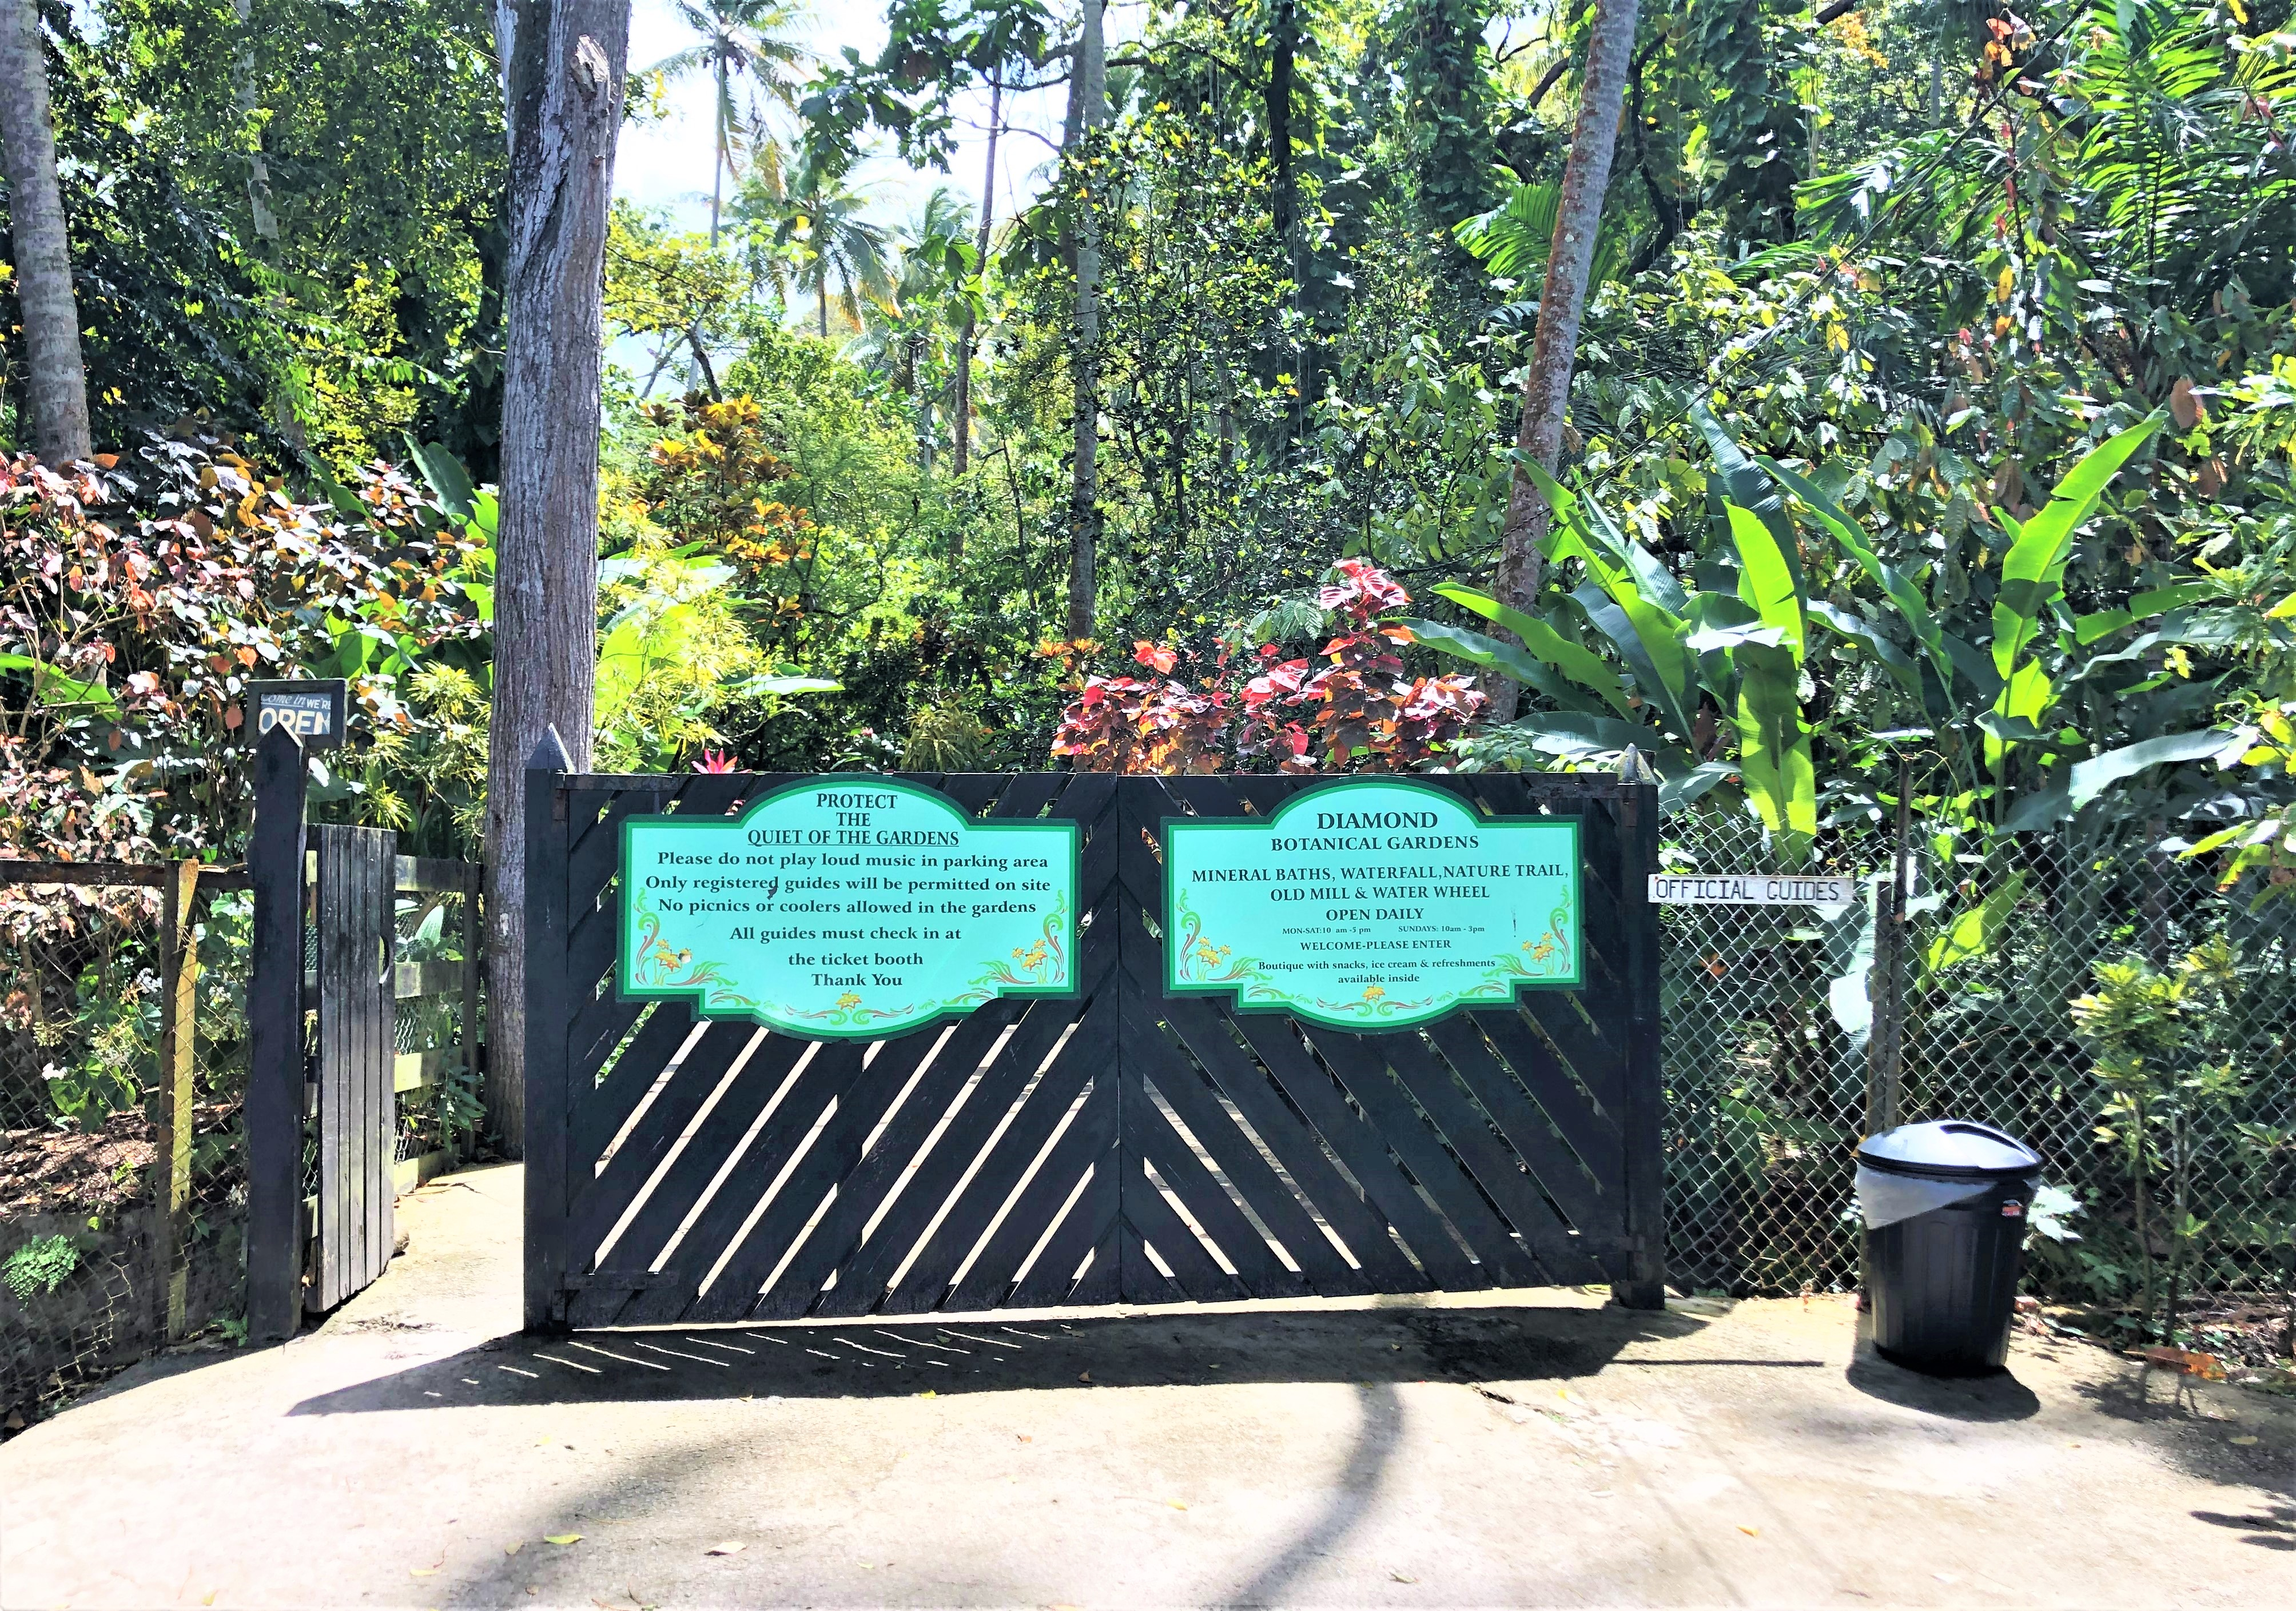 Diamond Botanical Gardens in St. Lucia